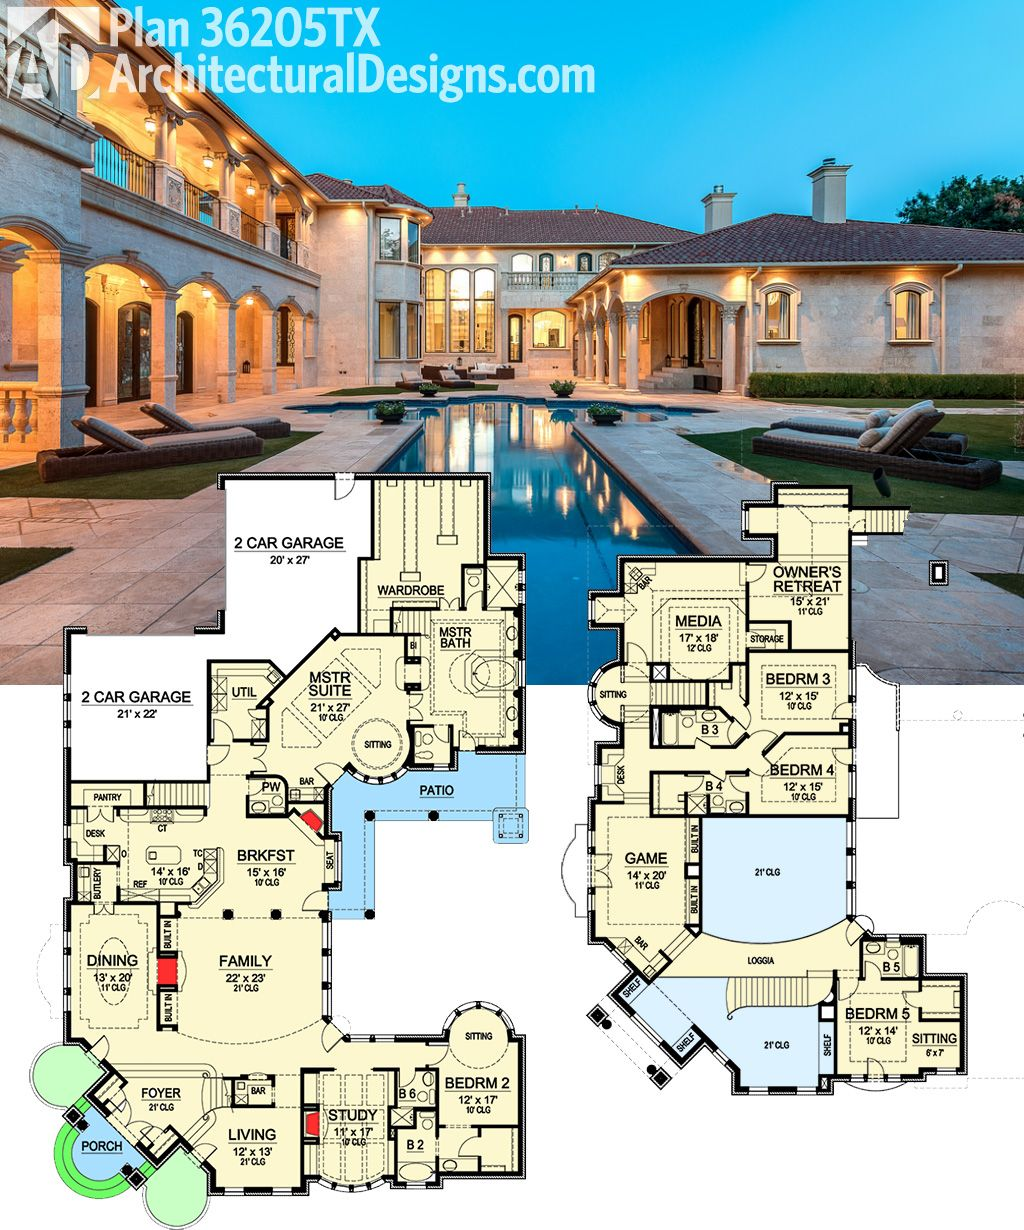 Architectural designs luxury house plan 36205tx gives you for Luxury house plans online